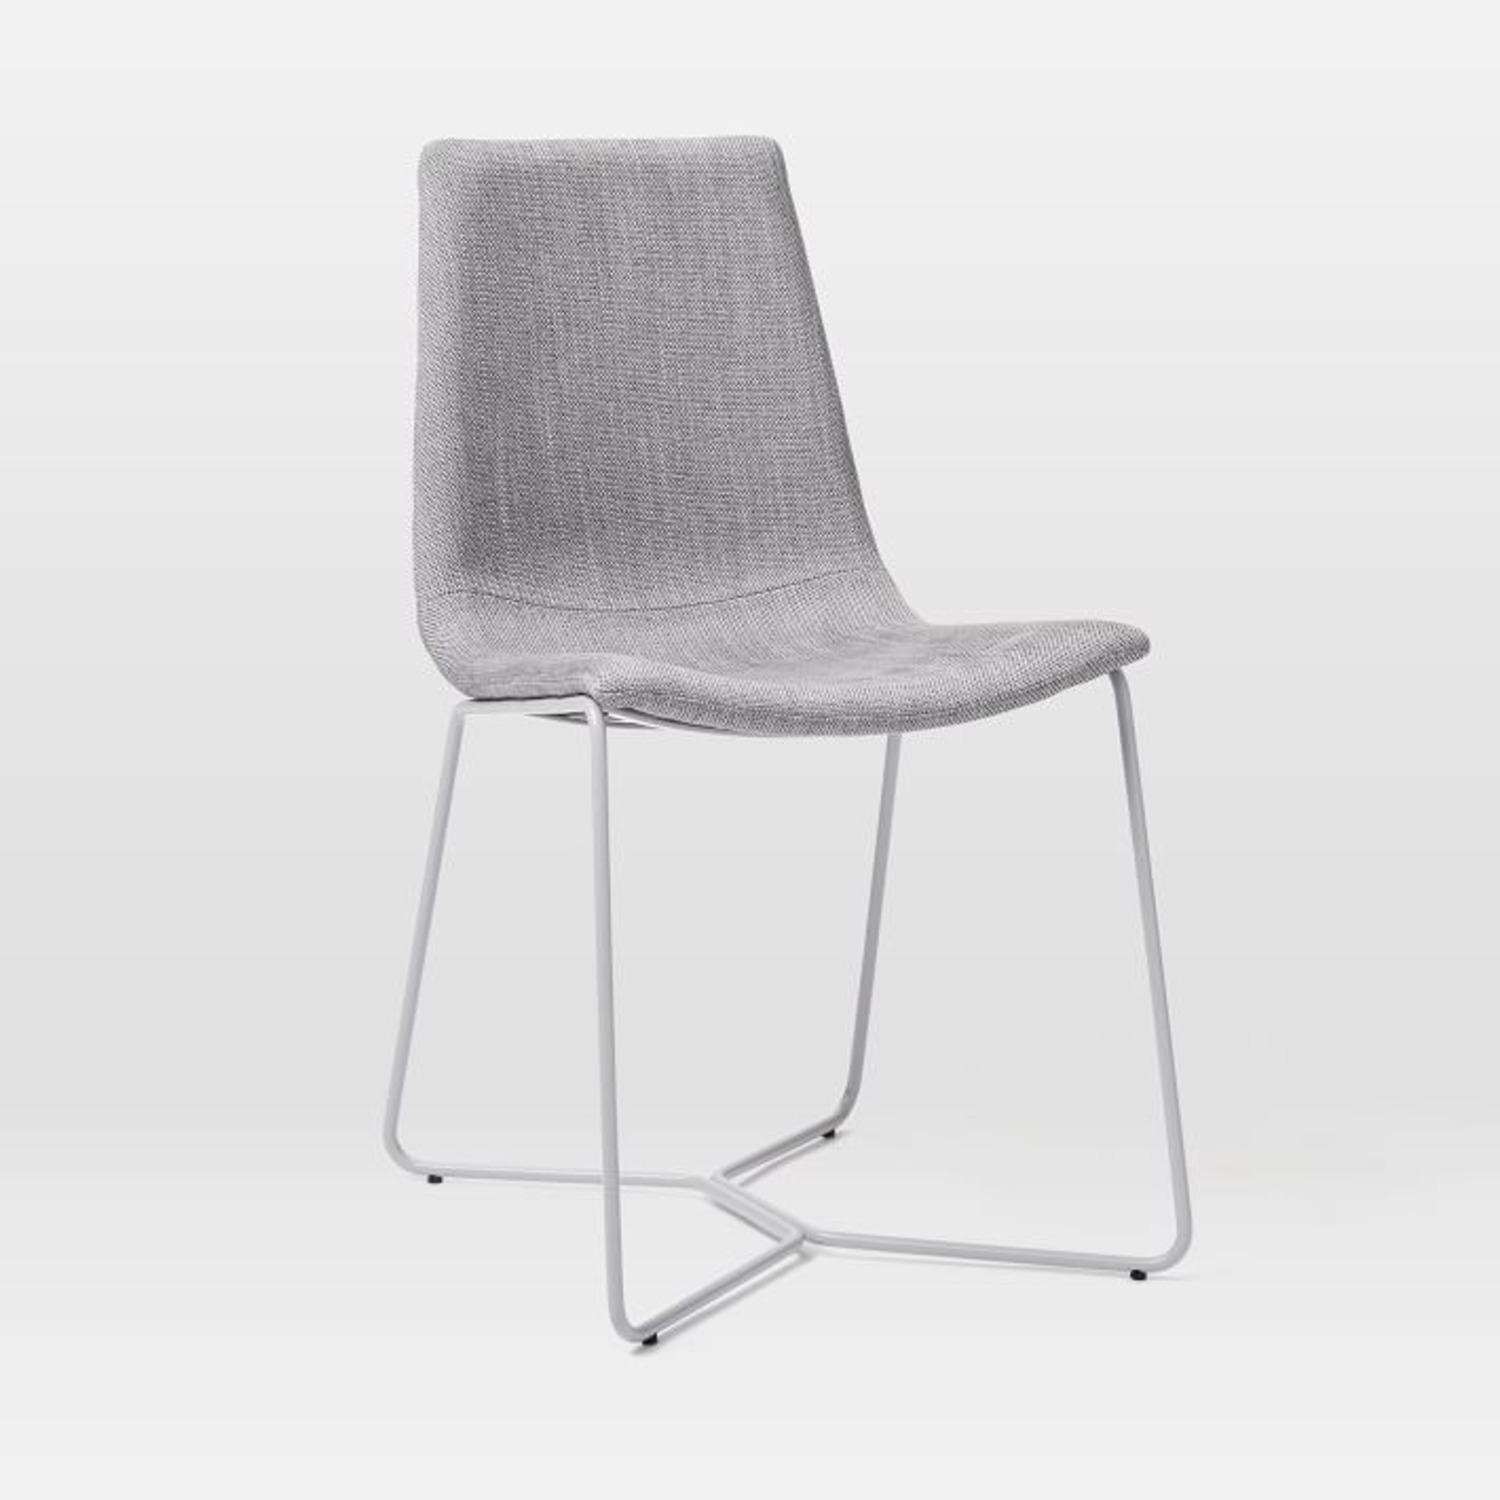 West Elm Slope Upholstered Dining Chair - image-2